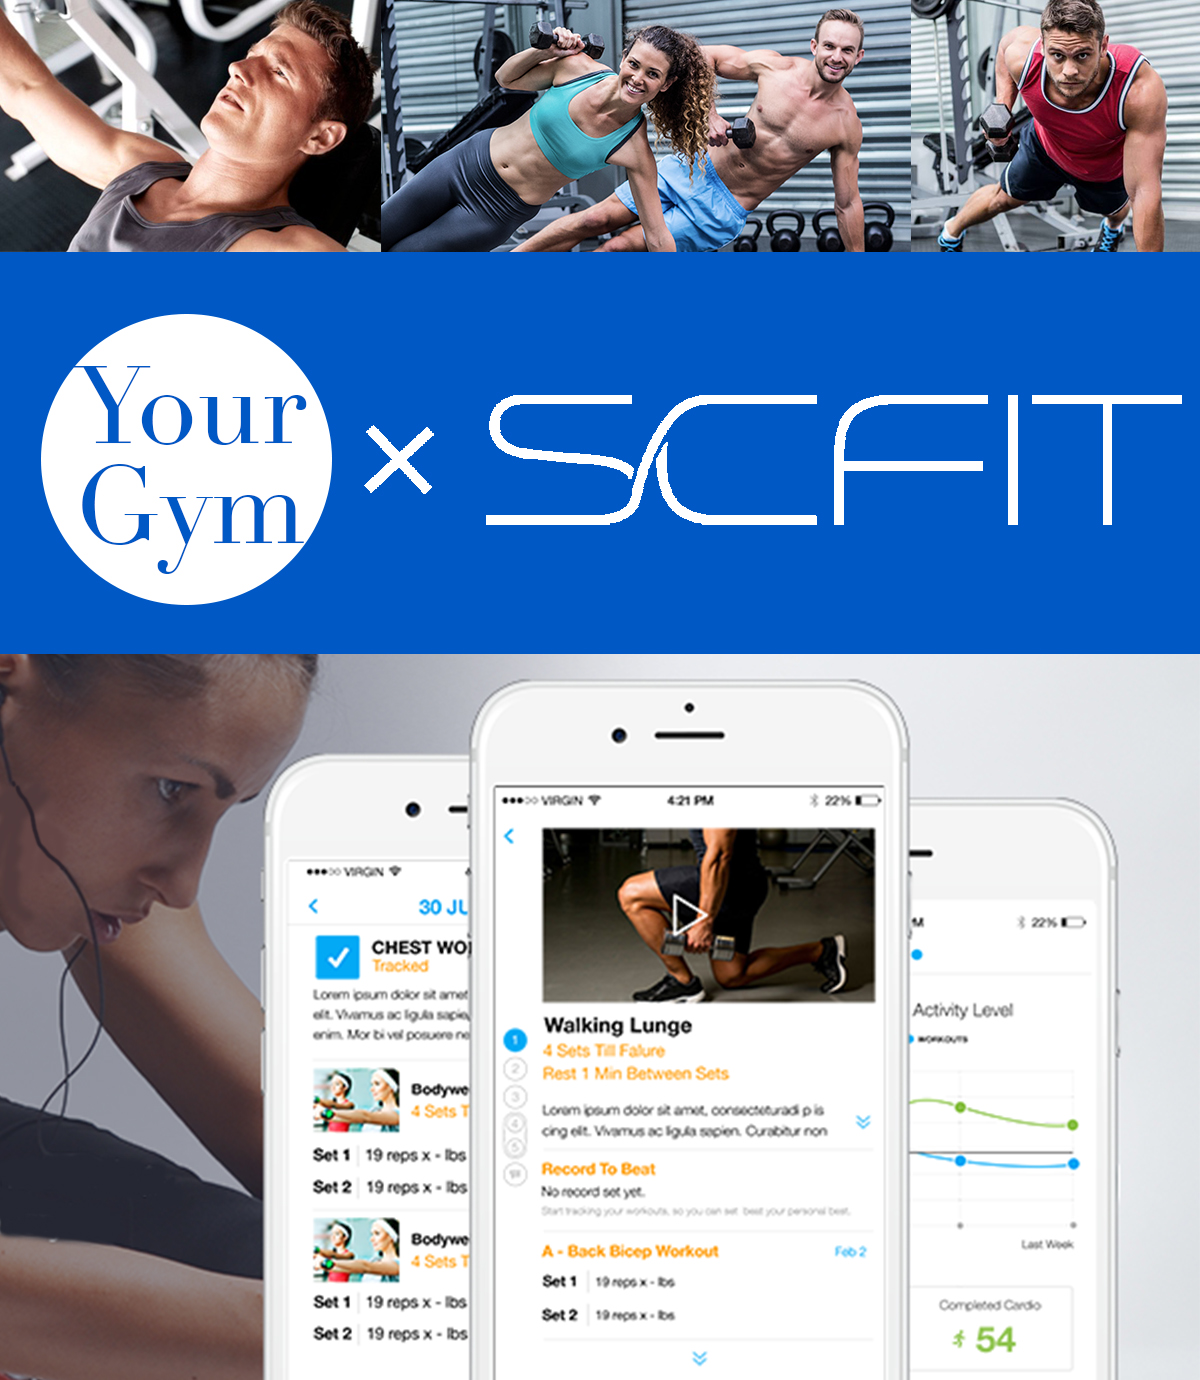 ADD ON TO YOUR MEMBER SERVICES - GIVE YOUR MEMBERS THE OPTION OF ADDING VIRTUAL TRAINING TO THEIR GYM MEMBERSHIP! OUR SYSTEMS HAVE BEEN PROVEN TO PROVIDE CLIENTS WITH GUIDANCE, ACCOUNTABILITY AND SUPPORT. THIS IS A GREAT TOOL FOR MEMBERS WHO FEEL LOST IN THE GYM AND DON'T HAVE ACCESS TO THE LUXURY OF IN-PERSON TRAINING. VIRTUAL TRAINING BUILDS RELATIONSHIPS BETWEEN TRAINERS AT YOUR GYM AND IT'S VIRTUAL MEMBERS. CLIENTS ARE 100% MORE LIKELY TO TRAIN IN PERSON AFTER VIRTUAL TRAINING VS. NOT AT ALL.